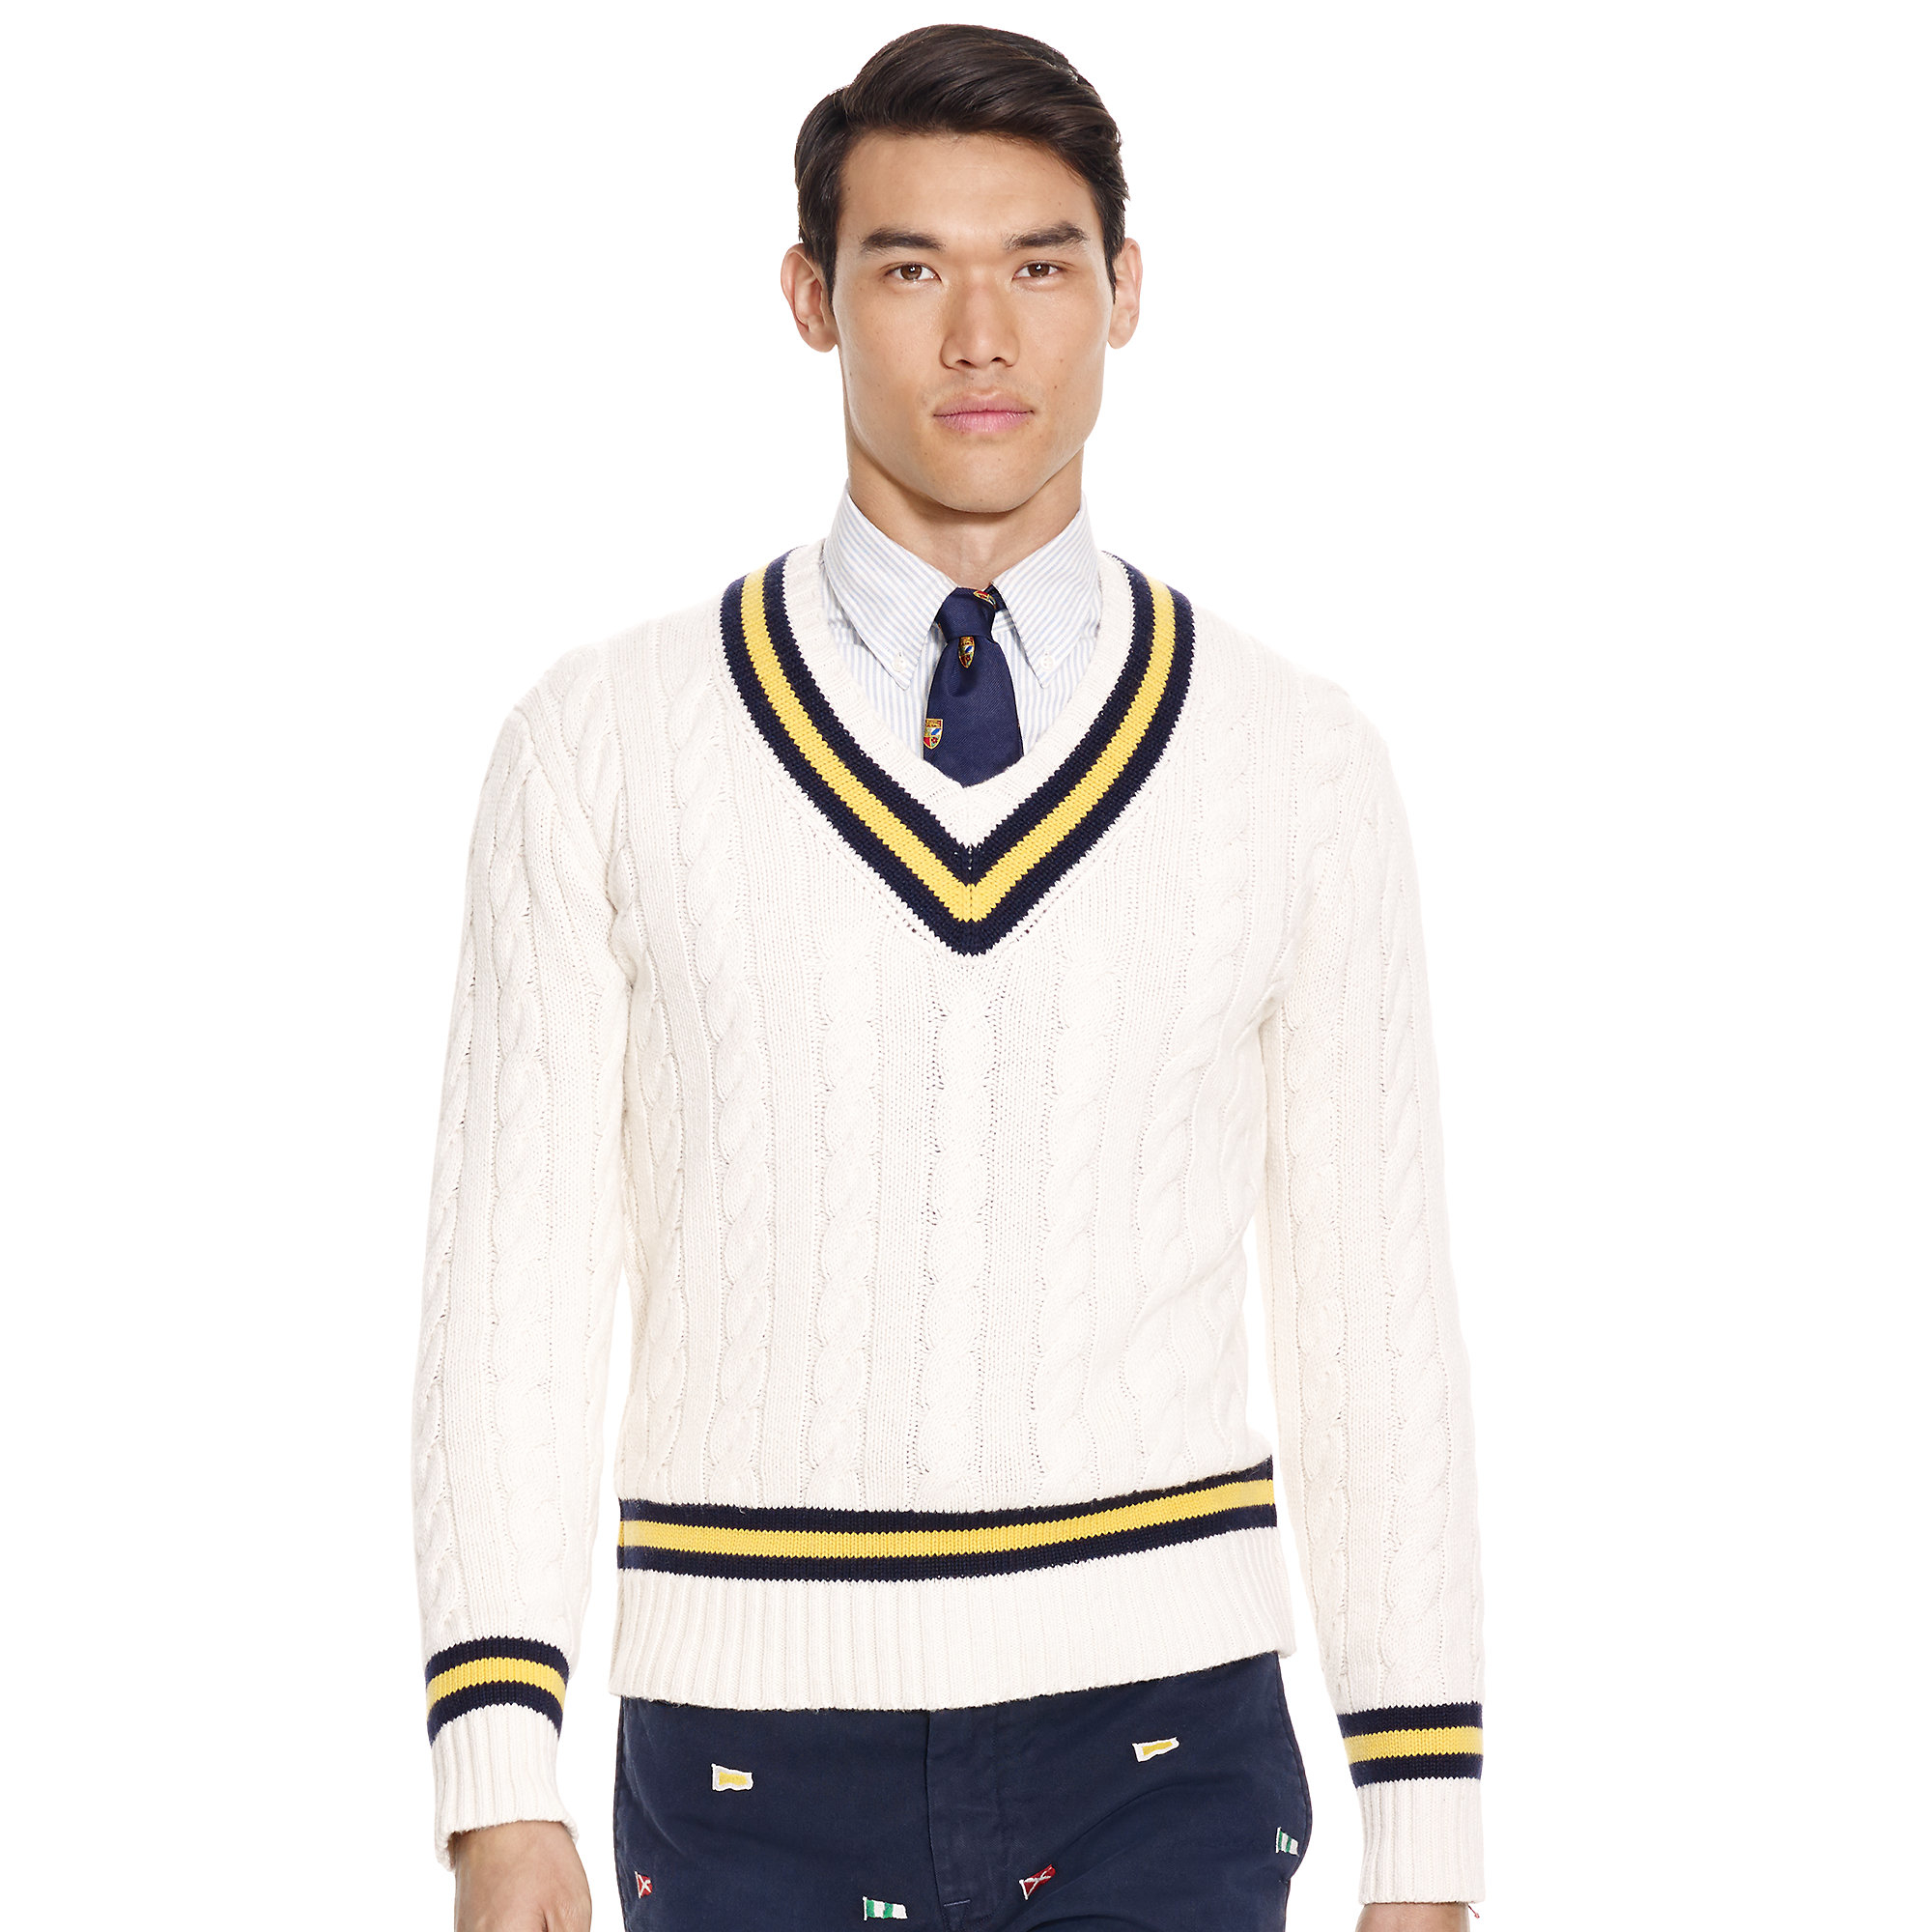 54071526b6cf6 ... discount code for lyst polo ralph lauren cotton blend cricket sweater  in white for men 60321